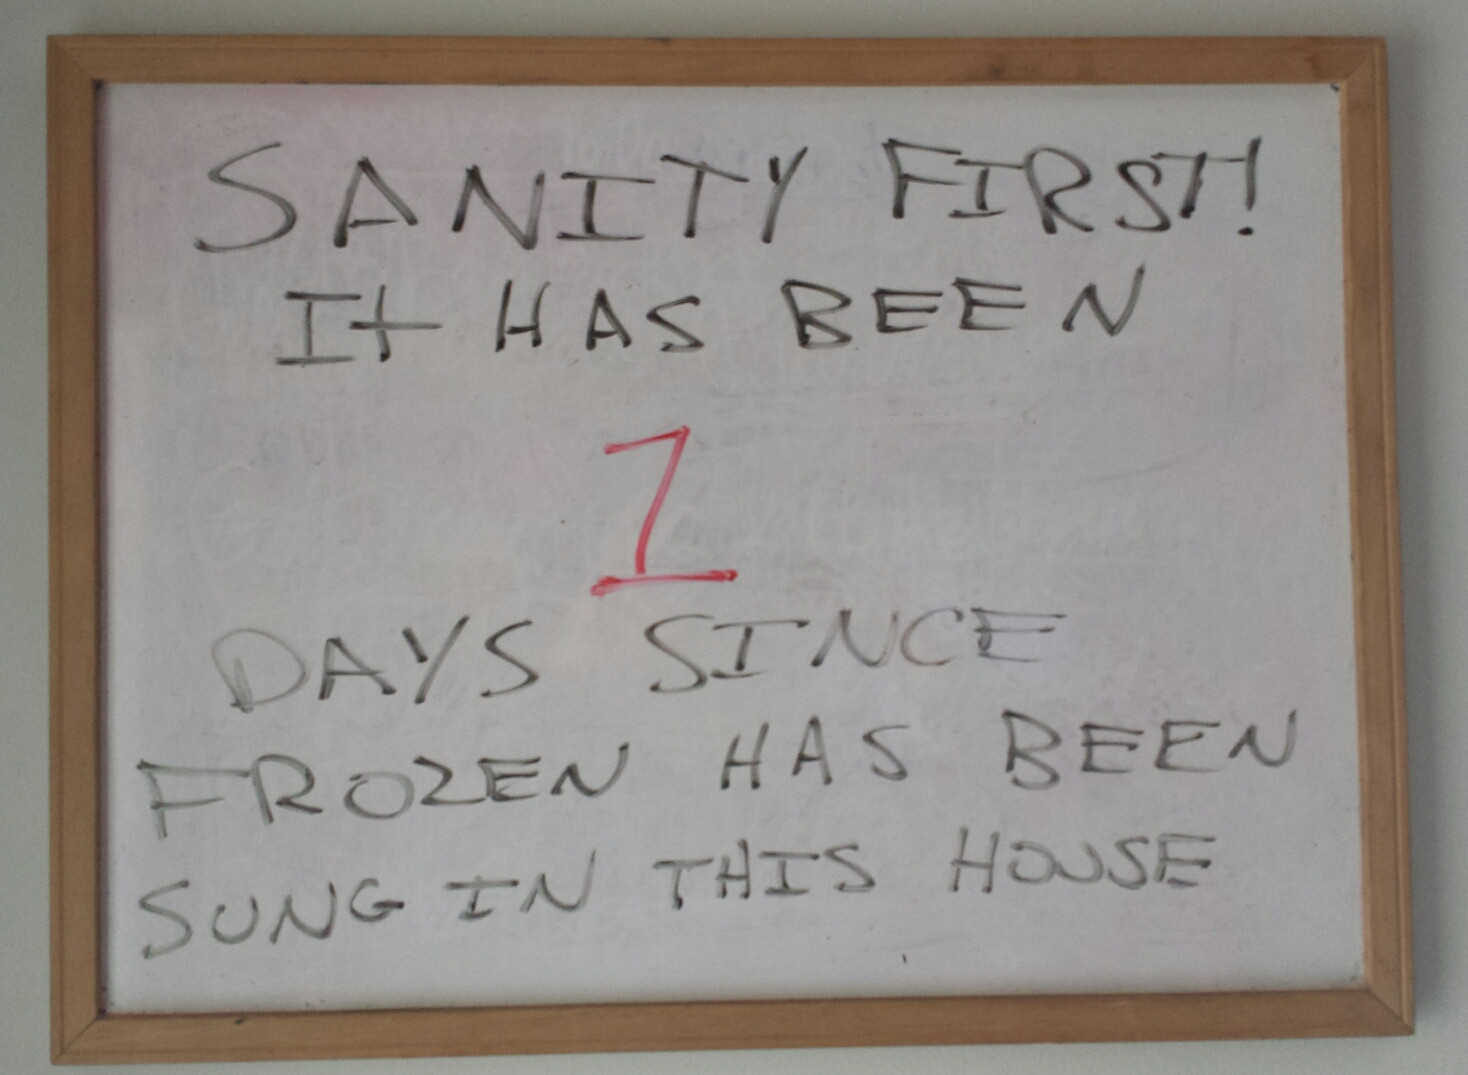 This father of two girls is doing what he can to make his house a 'Frozen'-free zone.